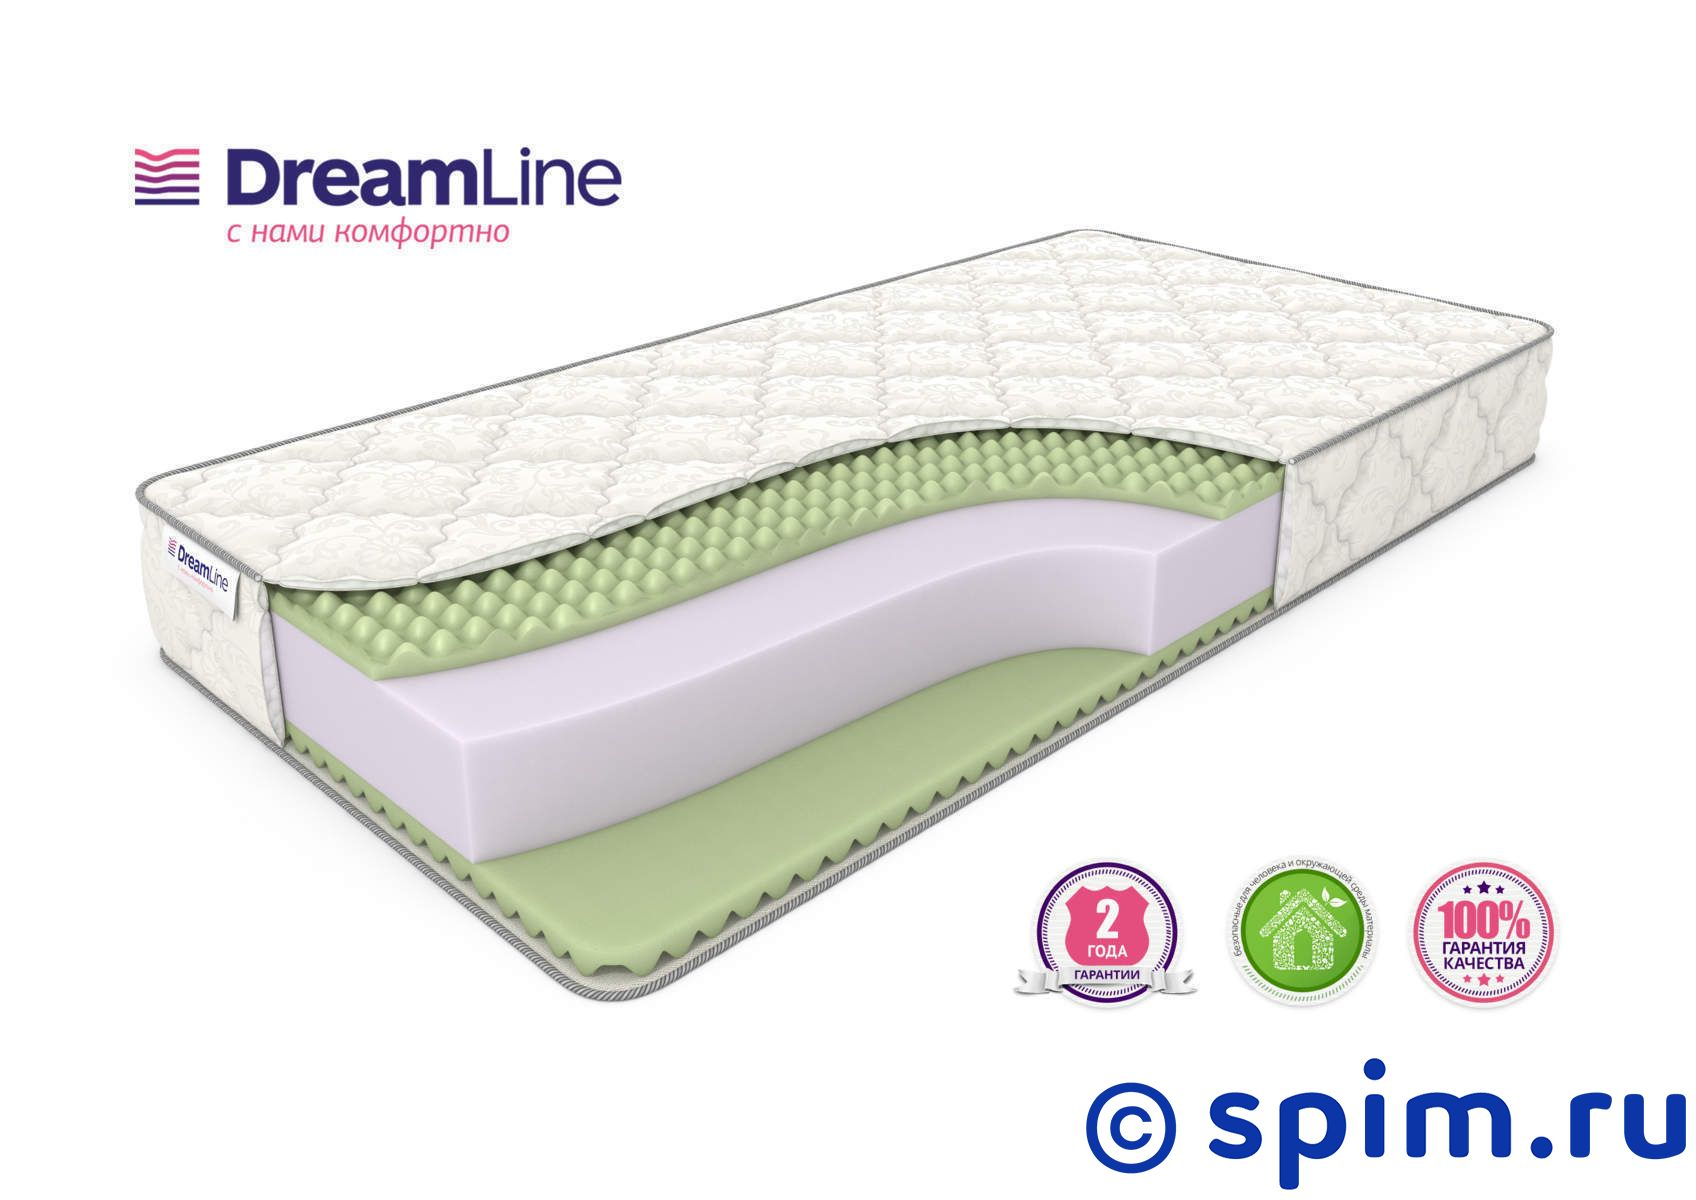 Матрас DreamLine Roll Massage 80х190 см